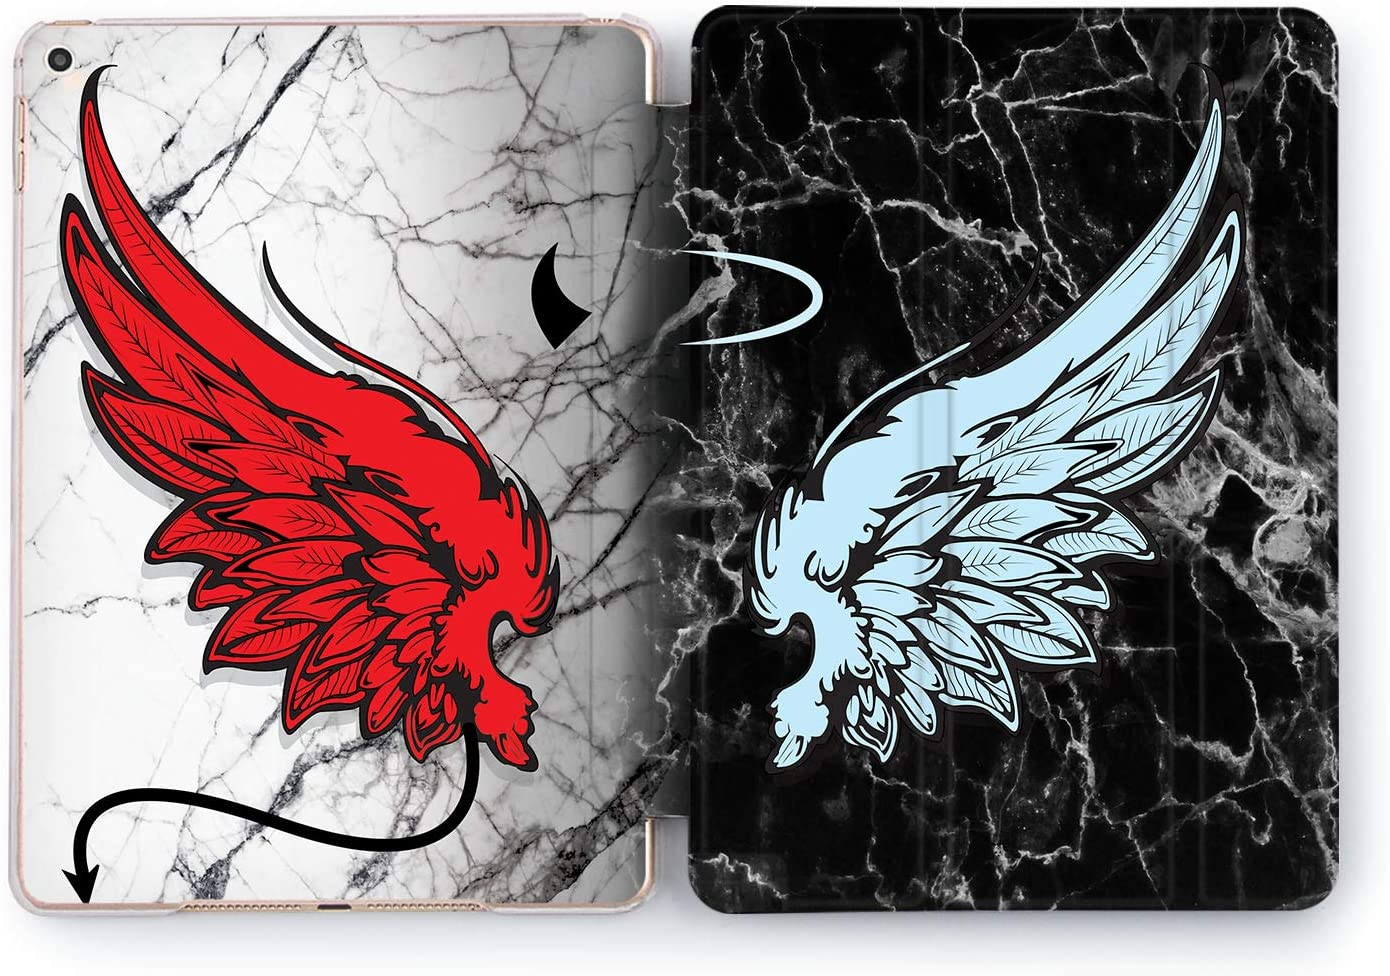 Wonder Wild Case Compatible with Apple iPad Angel and Devil Pro 9.7 11 inch Mini 1 2 3 4 Air 2 10.5 12.9 11 10.2 5th 6th Gen Hard Cover Heaven Hell Wings Horns Halo Tale Opposition Antithetical